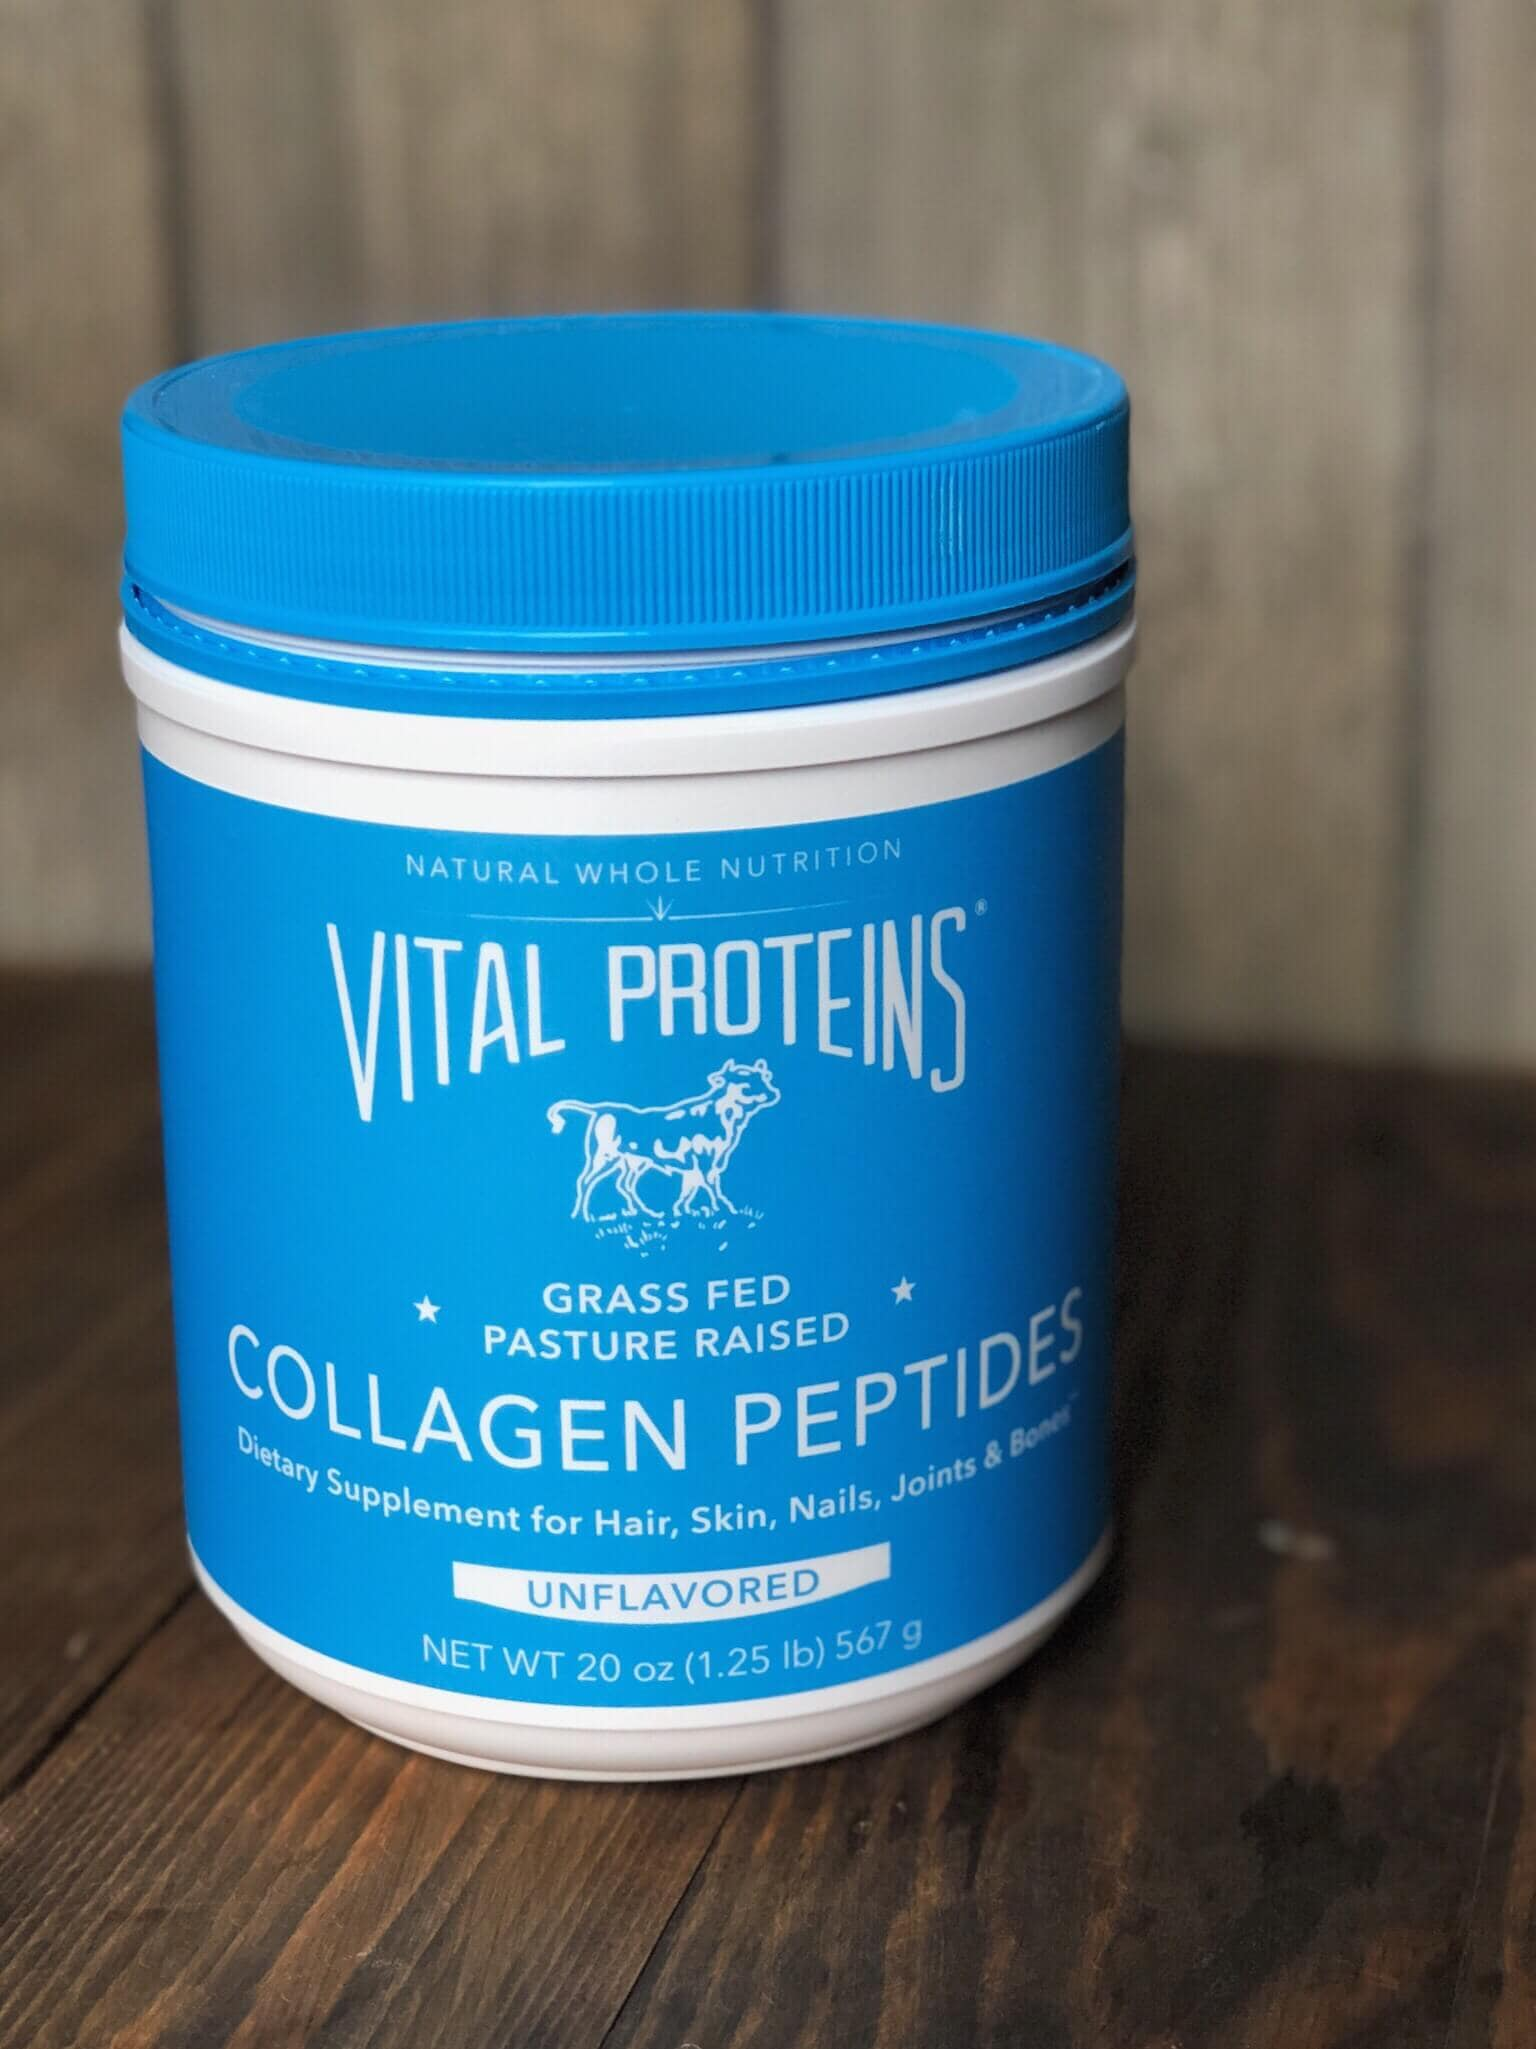 A canister of vital proteins collagen peptides on a wood background